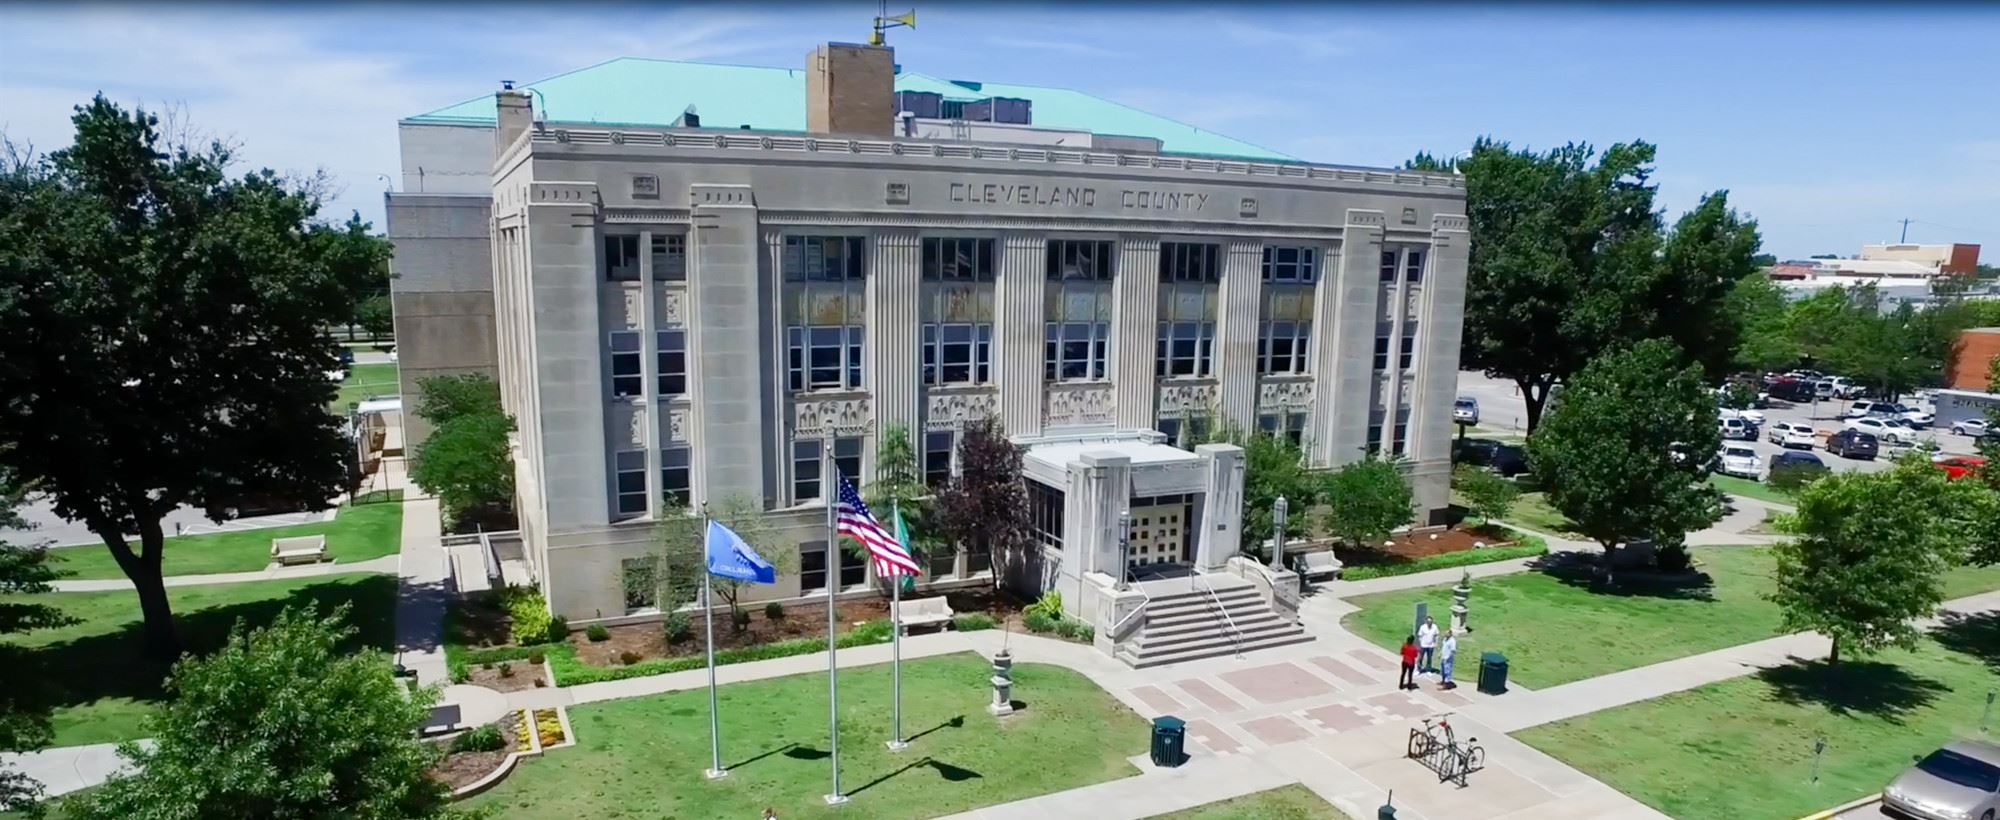 Cleveland County Ok Official Website Court Links United States Courts